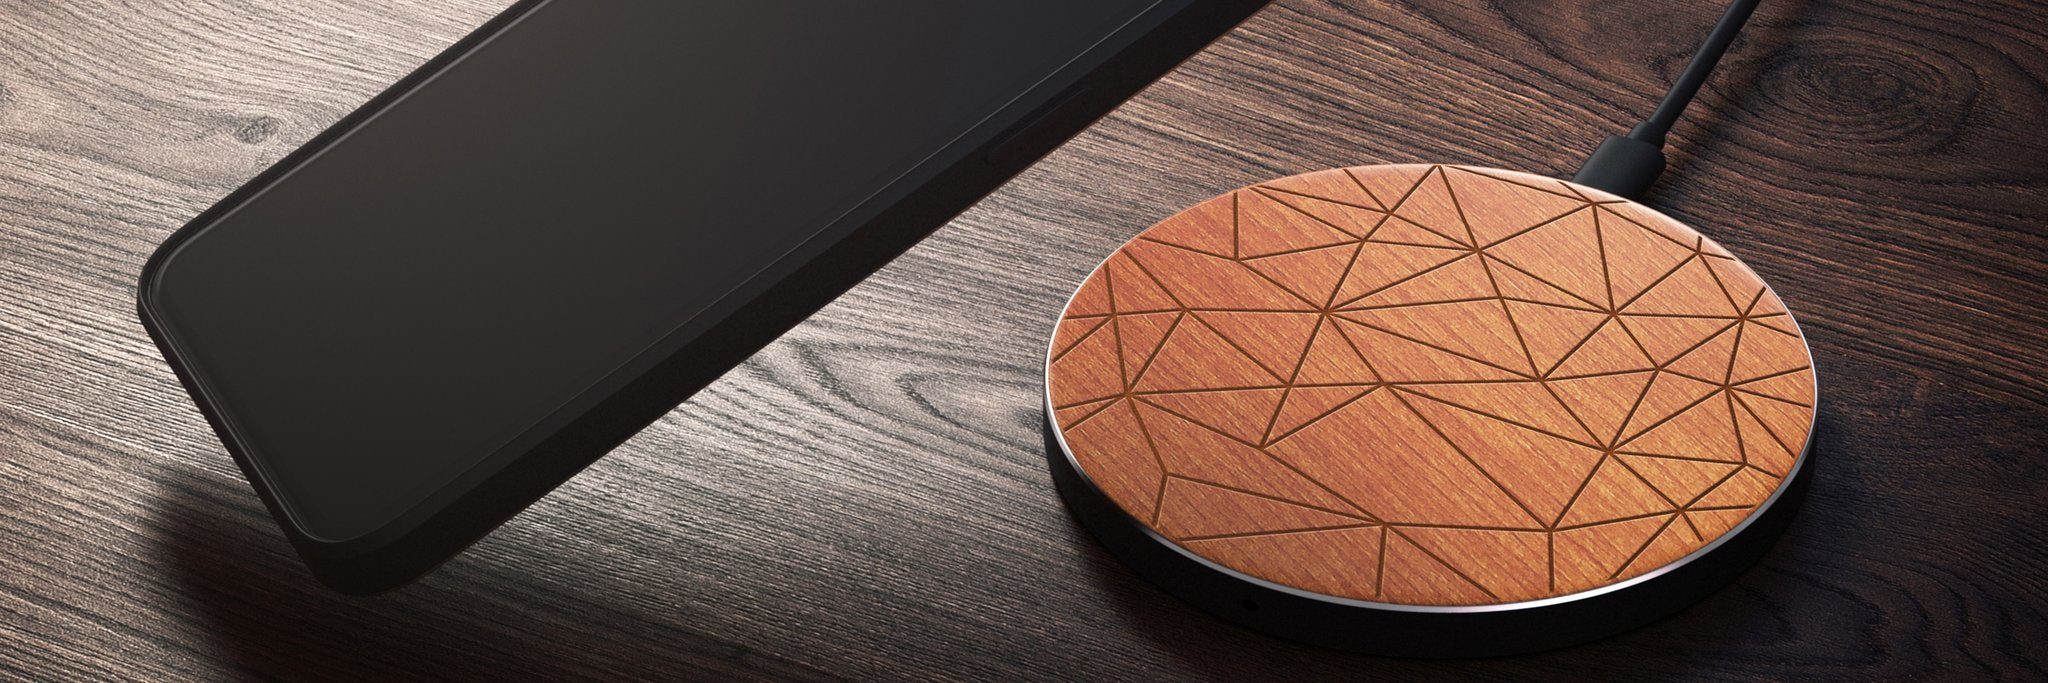 real-wood-wireless-charger